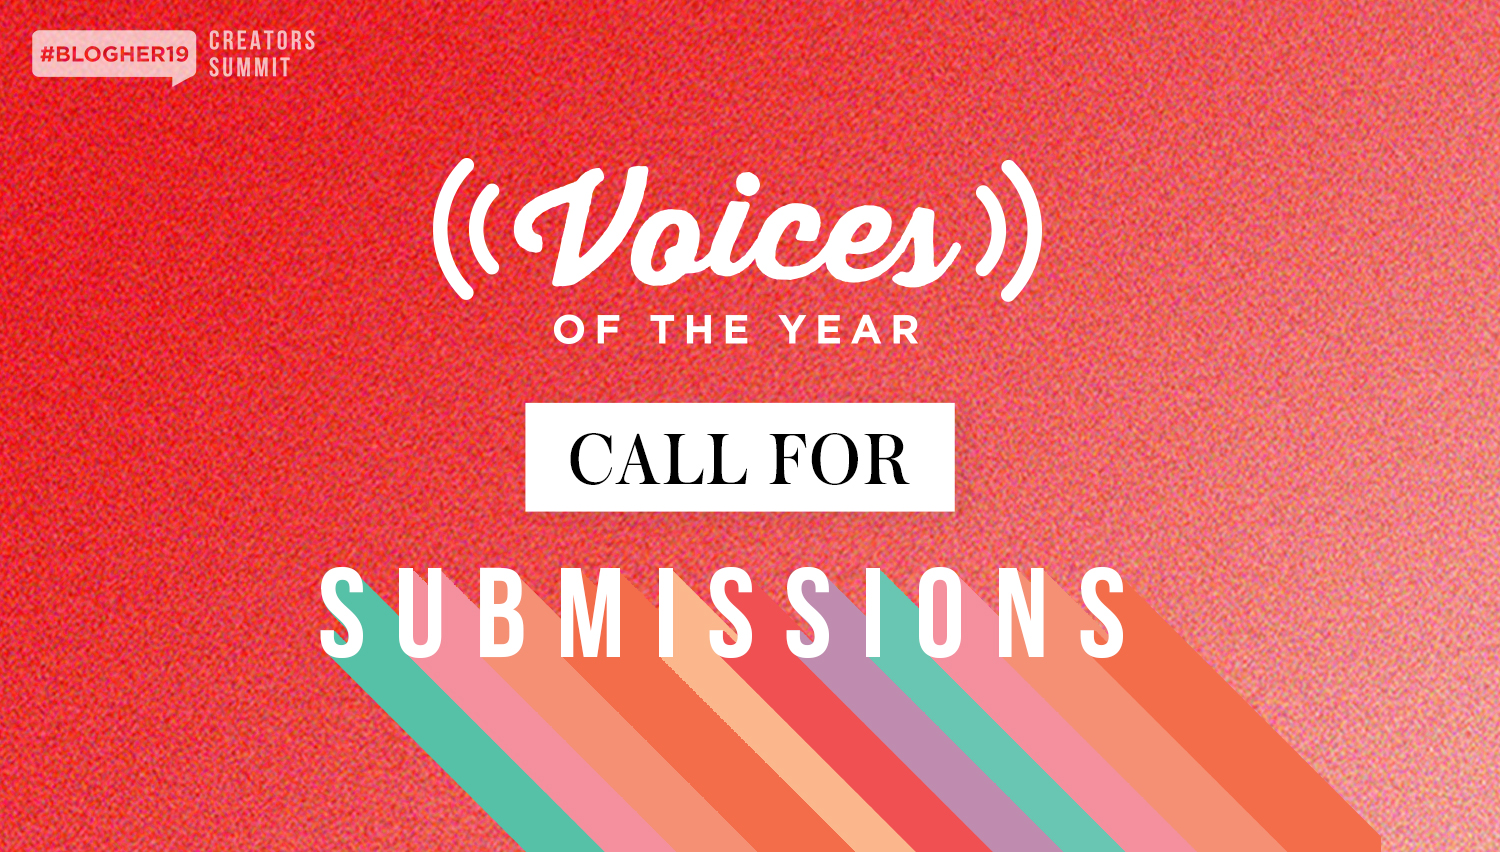 Celebrating Women's Voices - The Voices of the Year (#VOTY) Awards are coming to #BlogHer19 Creators Summit this September in NYC!